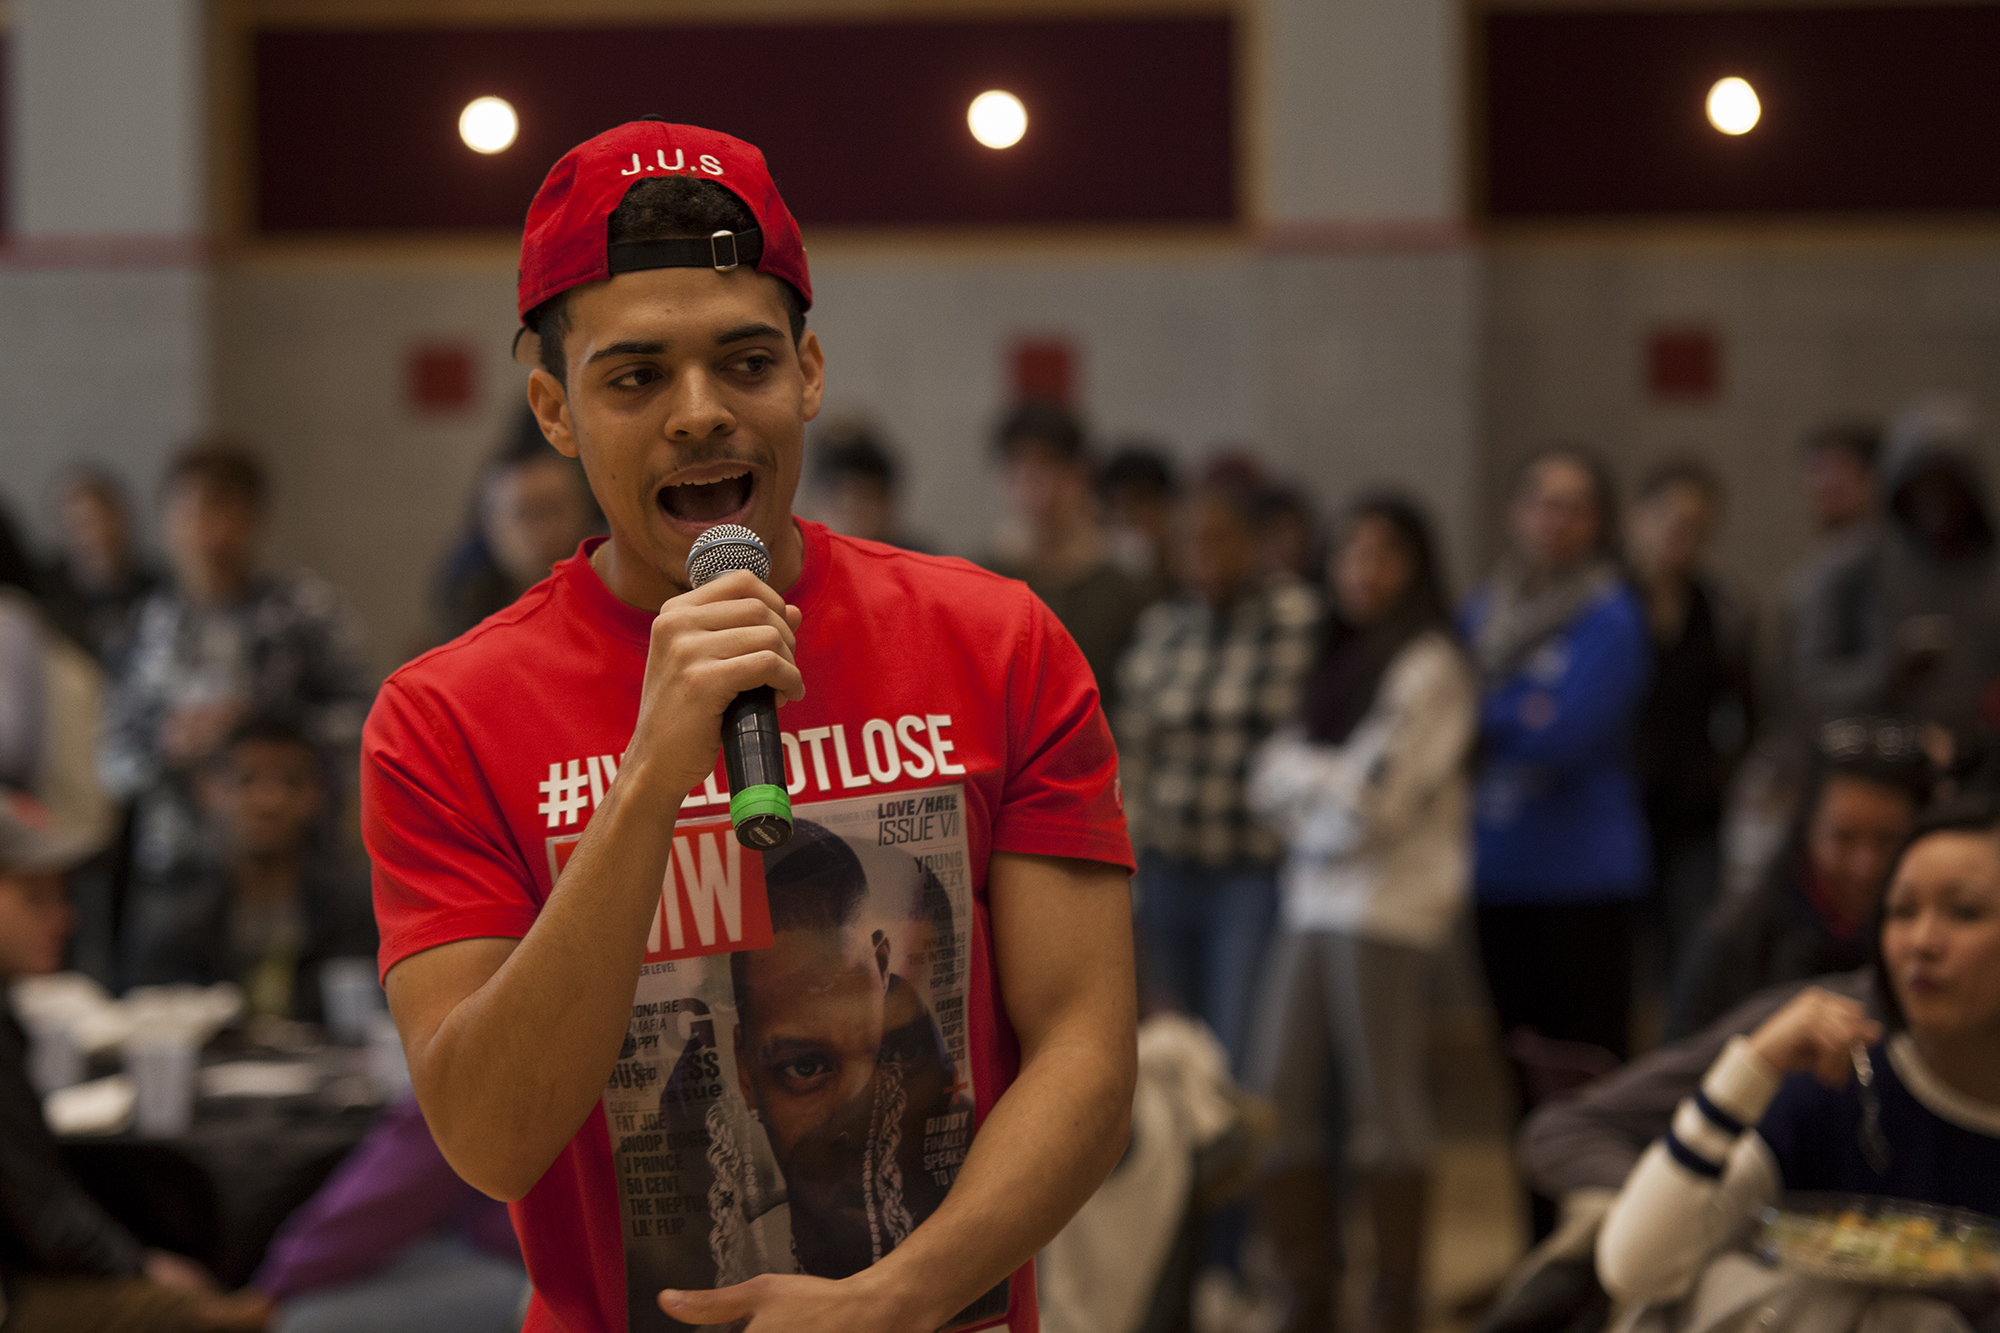 J.U.S. performed original work during his act at the Artist Release Party. He said he has been producing music since he was 14.<em>ERIC SCHMID/THE STATESMAN</em>